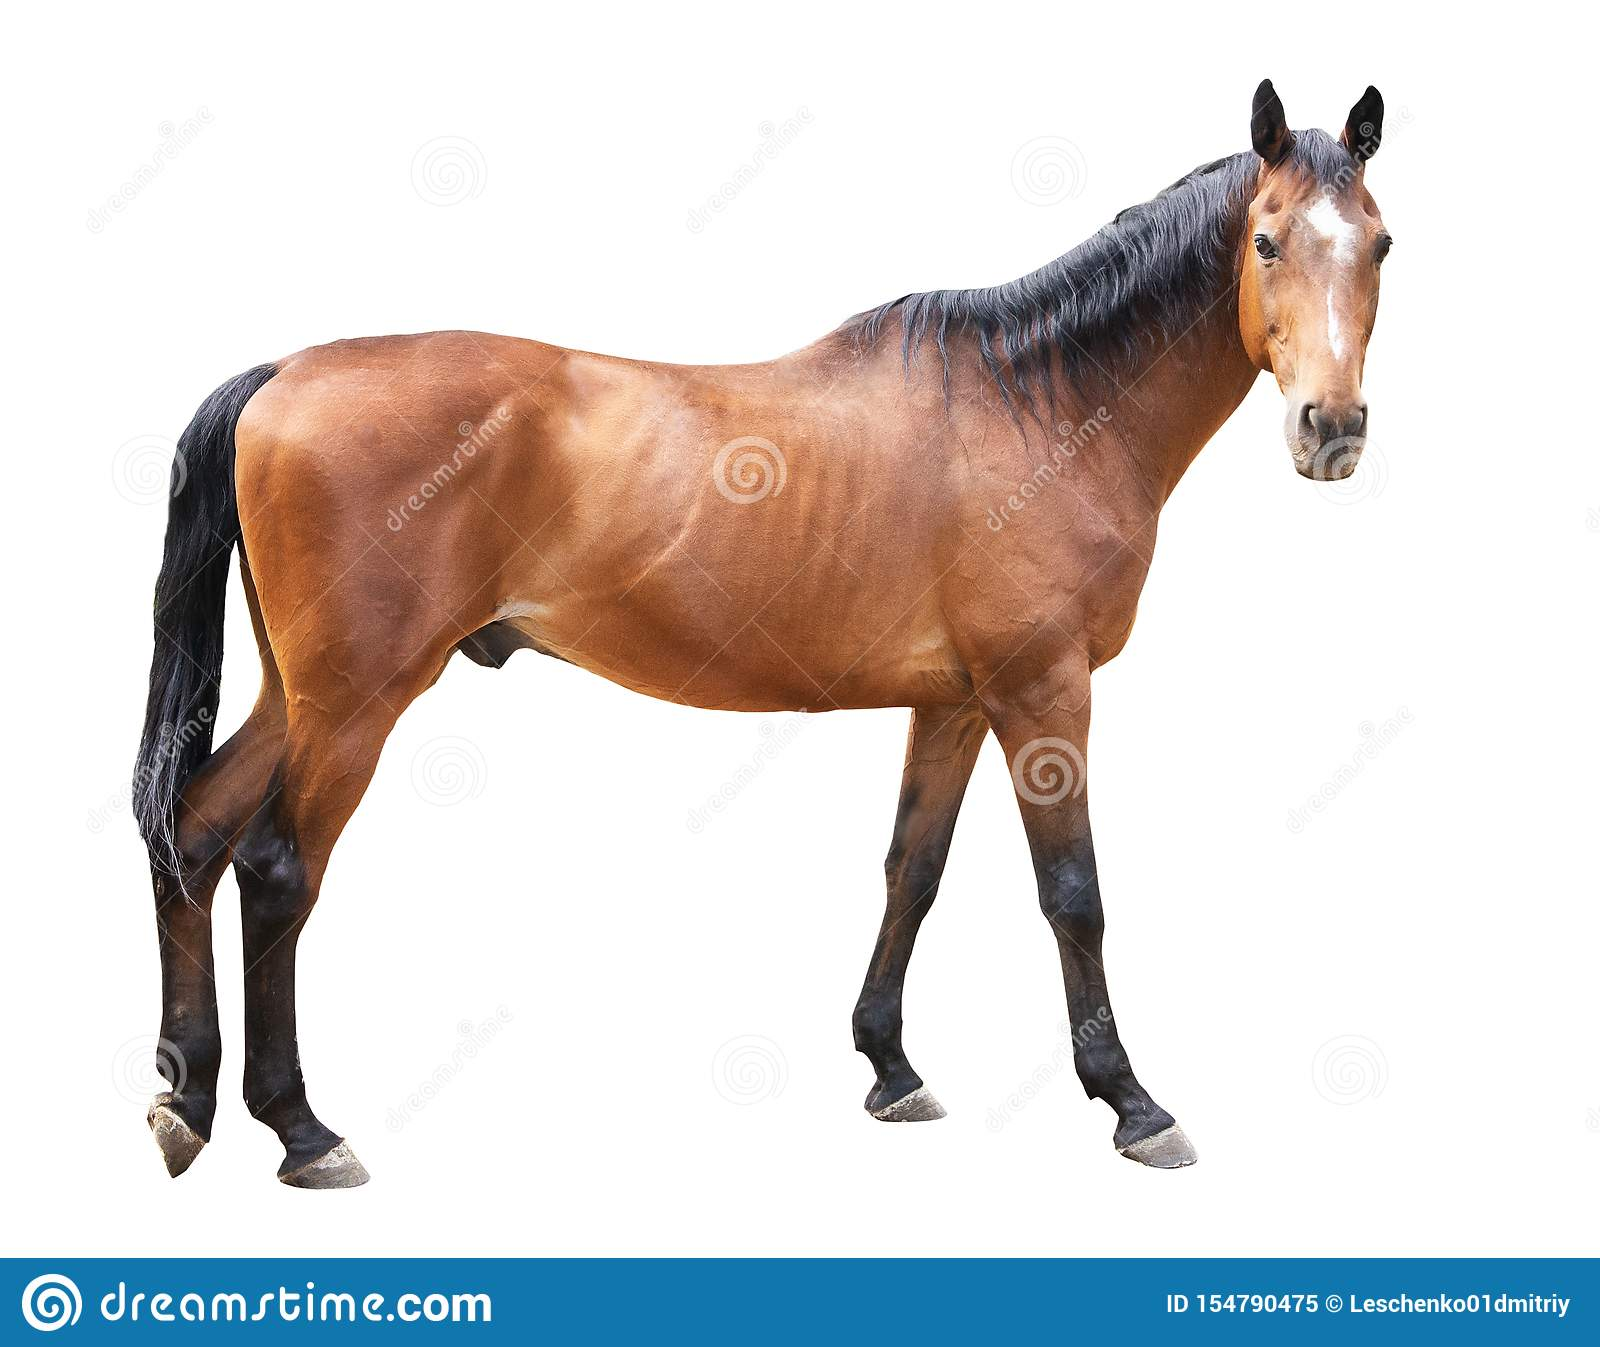 Beautiful Horse Ukrainian Riding Horse Horse Carved On A White Background Stock Image Image Of Sport Strong 154790475